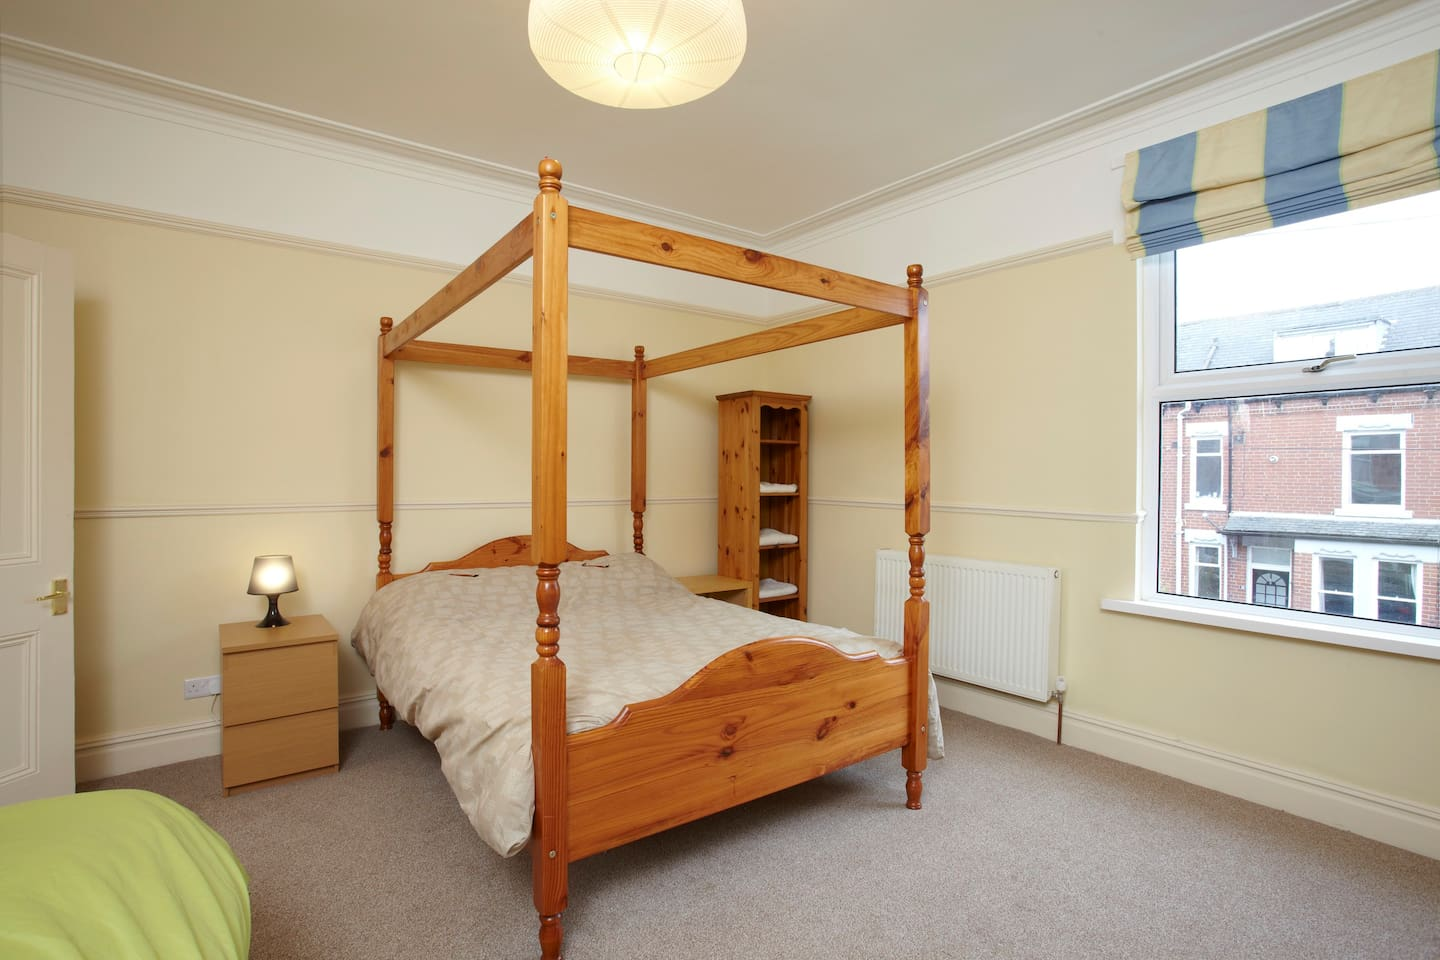 The Master Bedroom: four poster bed